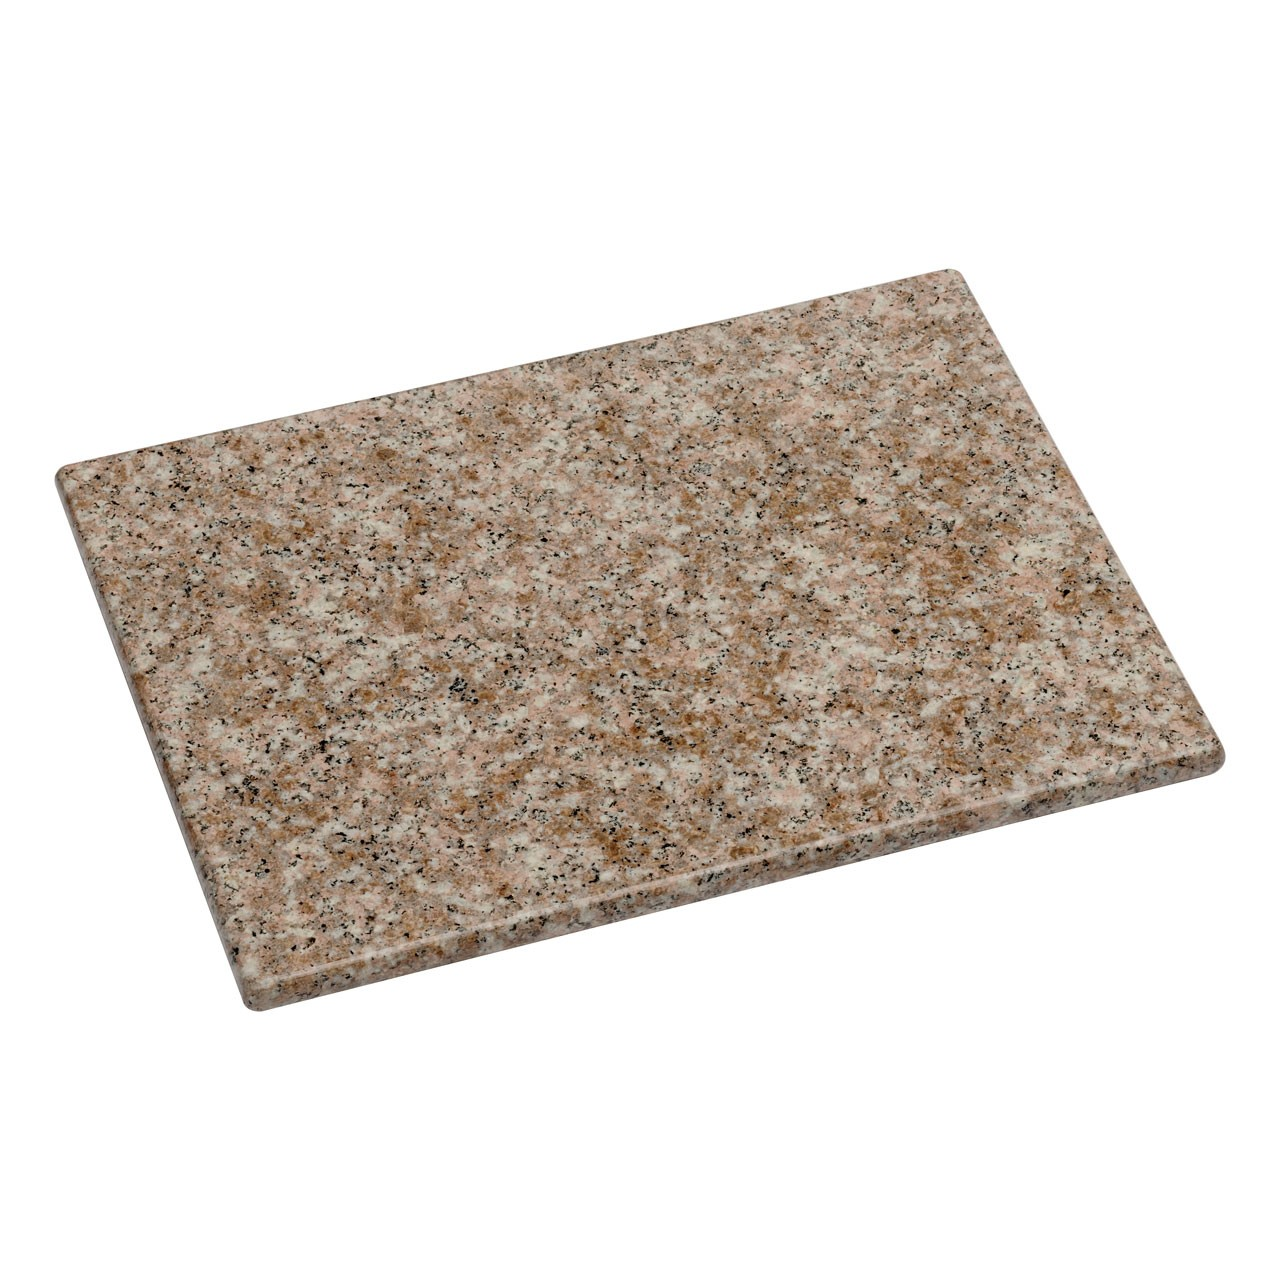 Premier Housewares Speckled Granite Chopping Board - 40 x 30 cm